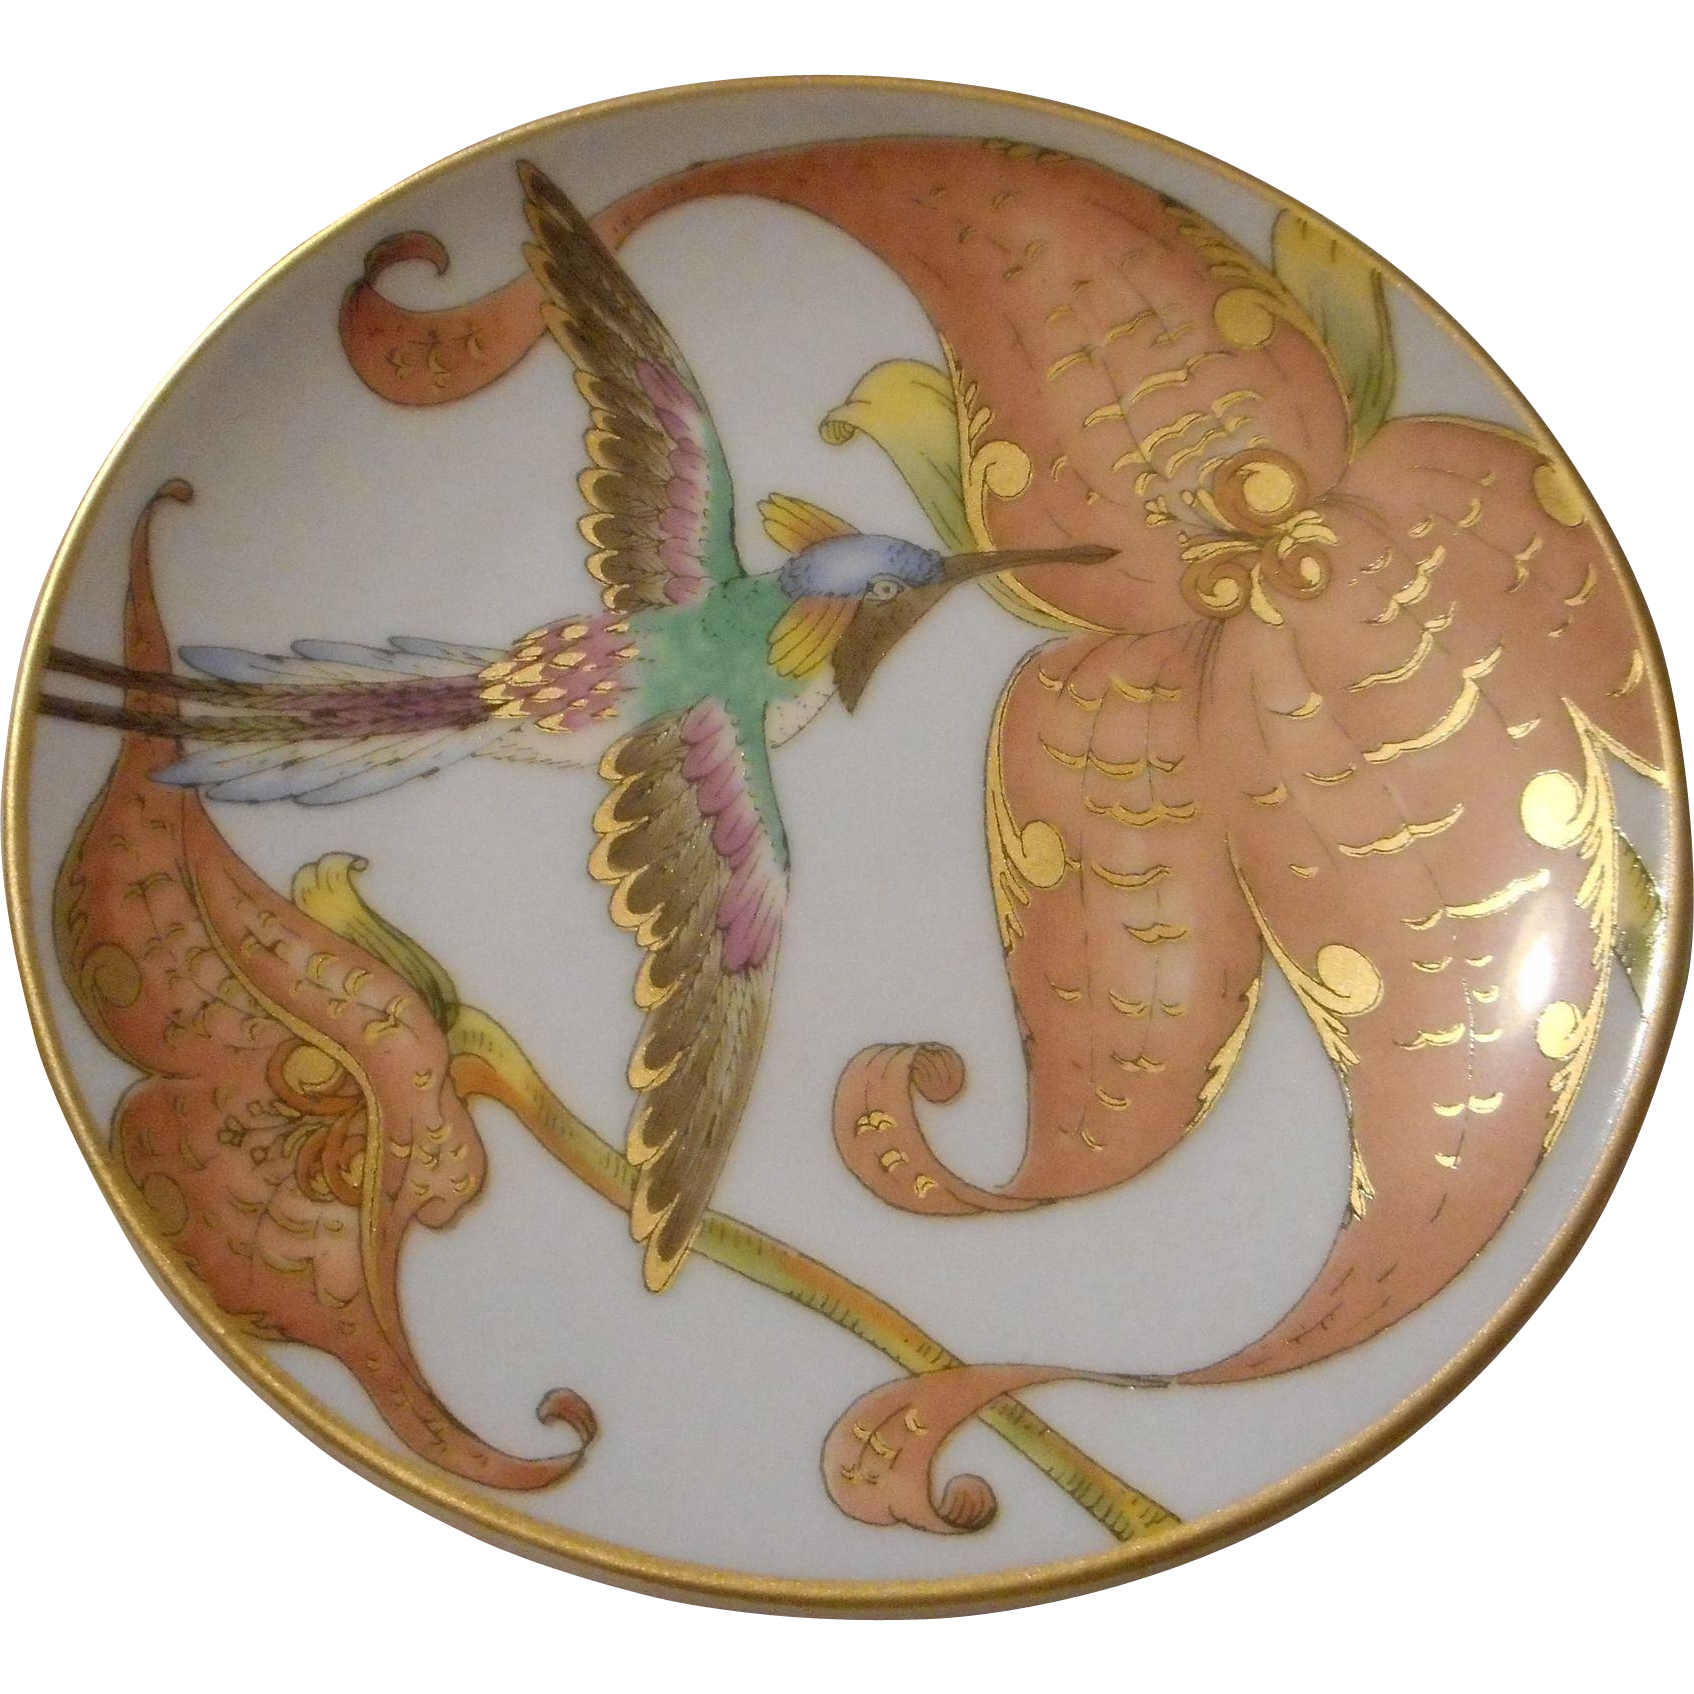 Hand Painted Plates : Vintage hand painted humming bird plate artist signed